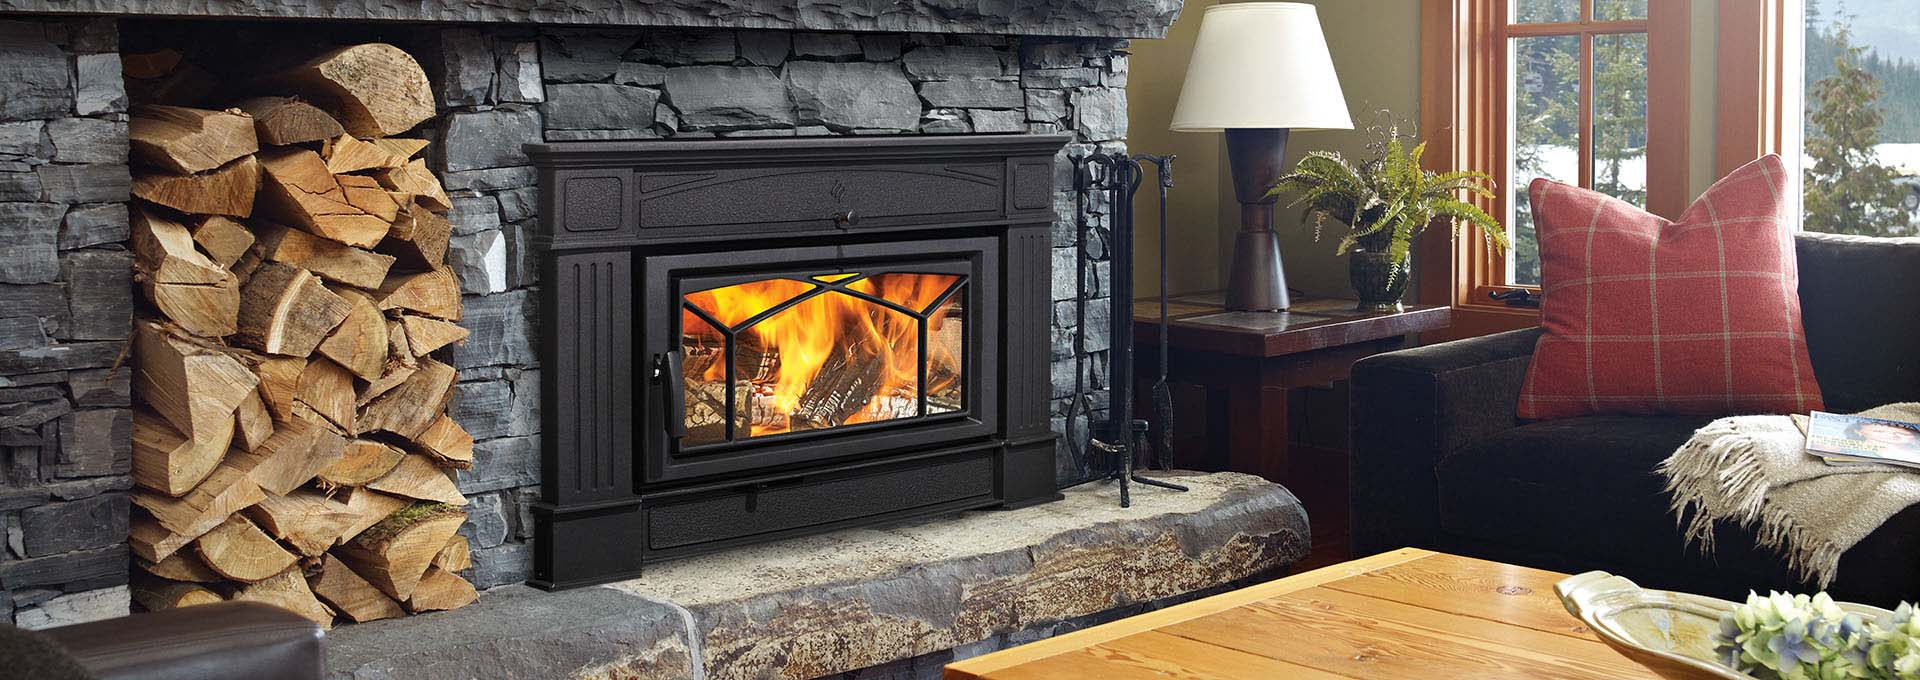 Fireplaces and stoves - general information: a selection of sites